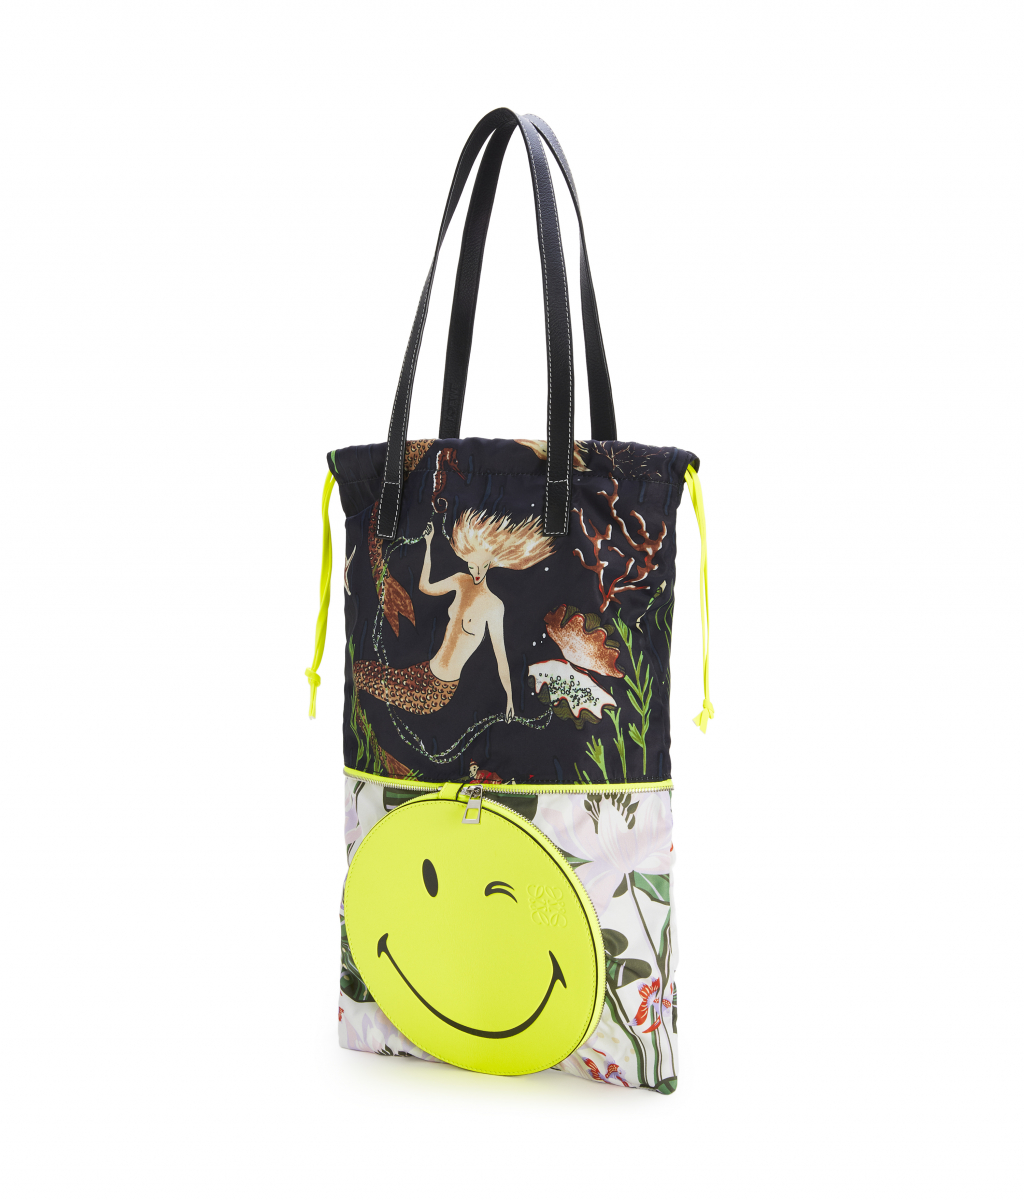 DOUBLE TOTE SMILEY WINK BAG(W32×H47×D3cm)¥112,000 ※日本限定/ロエベ ジャパン クライアントサービス LOEWE Paula's 2020 featuring SmileyWorld®